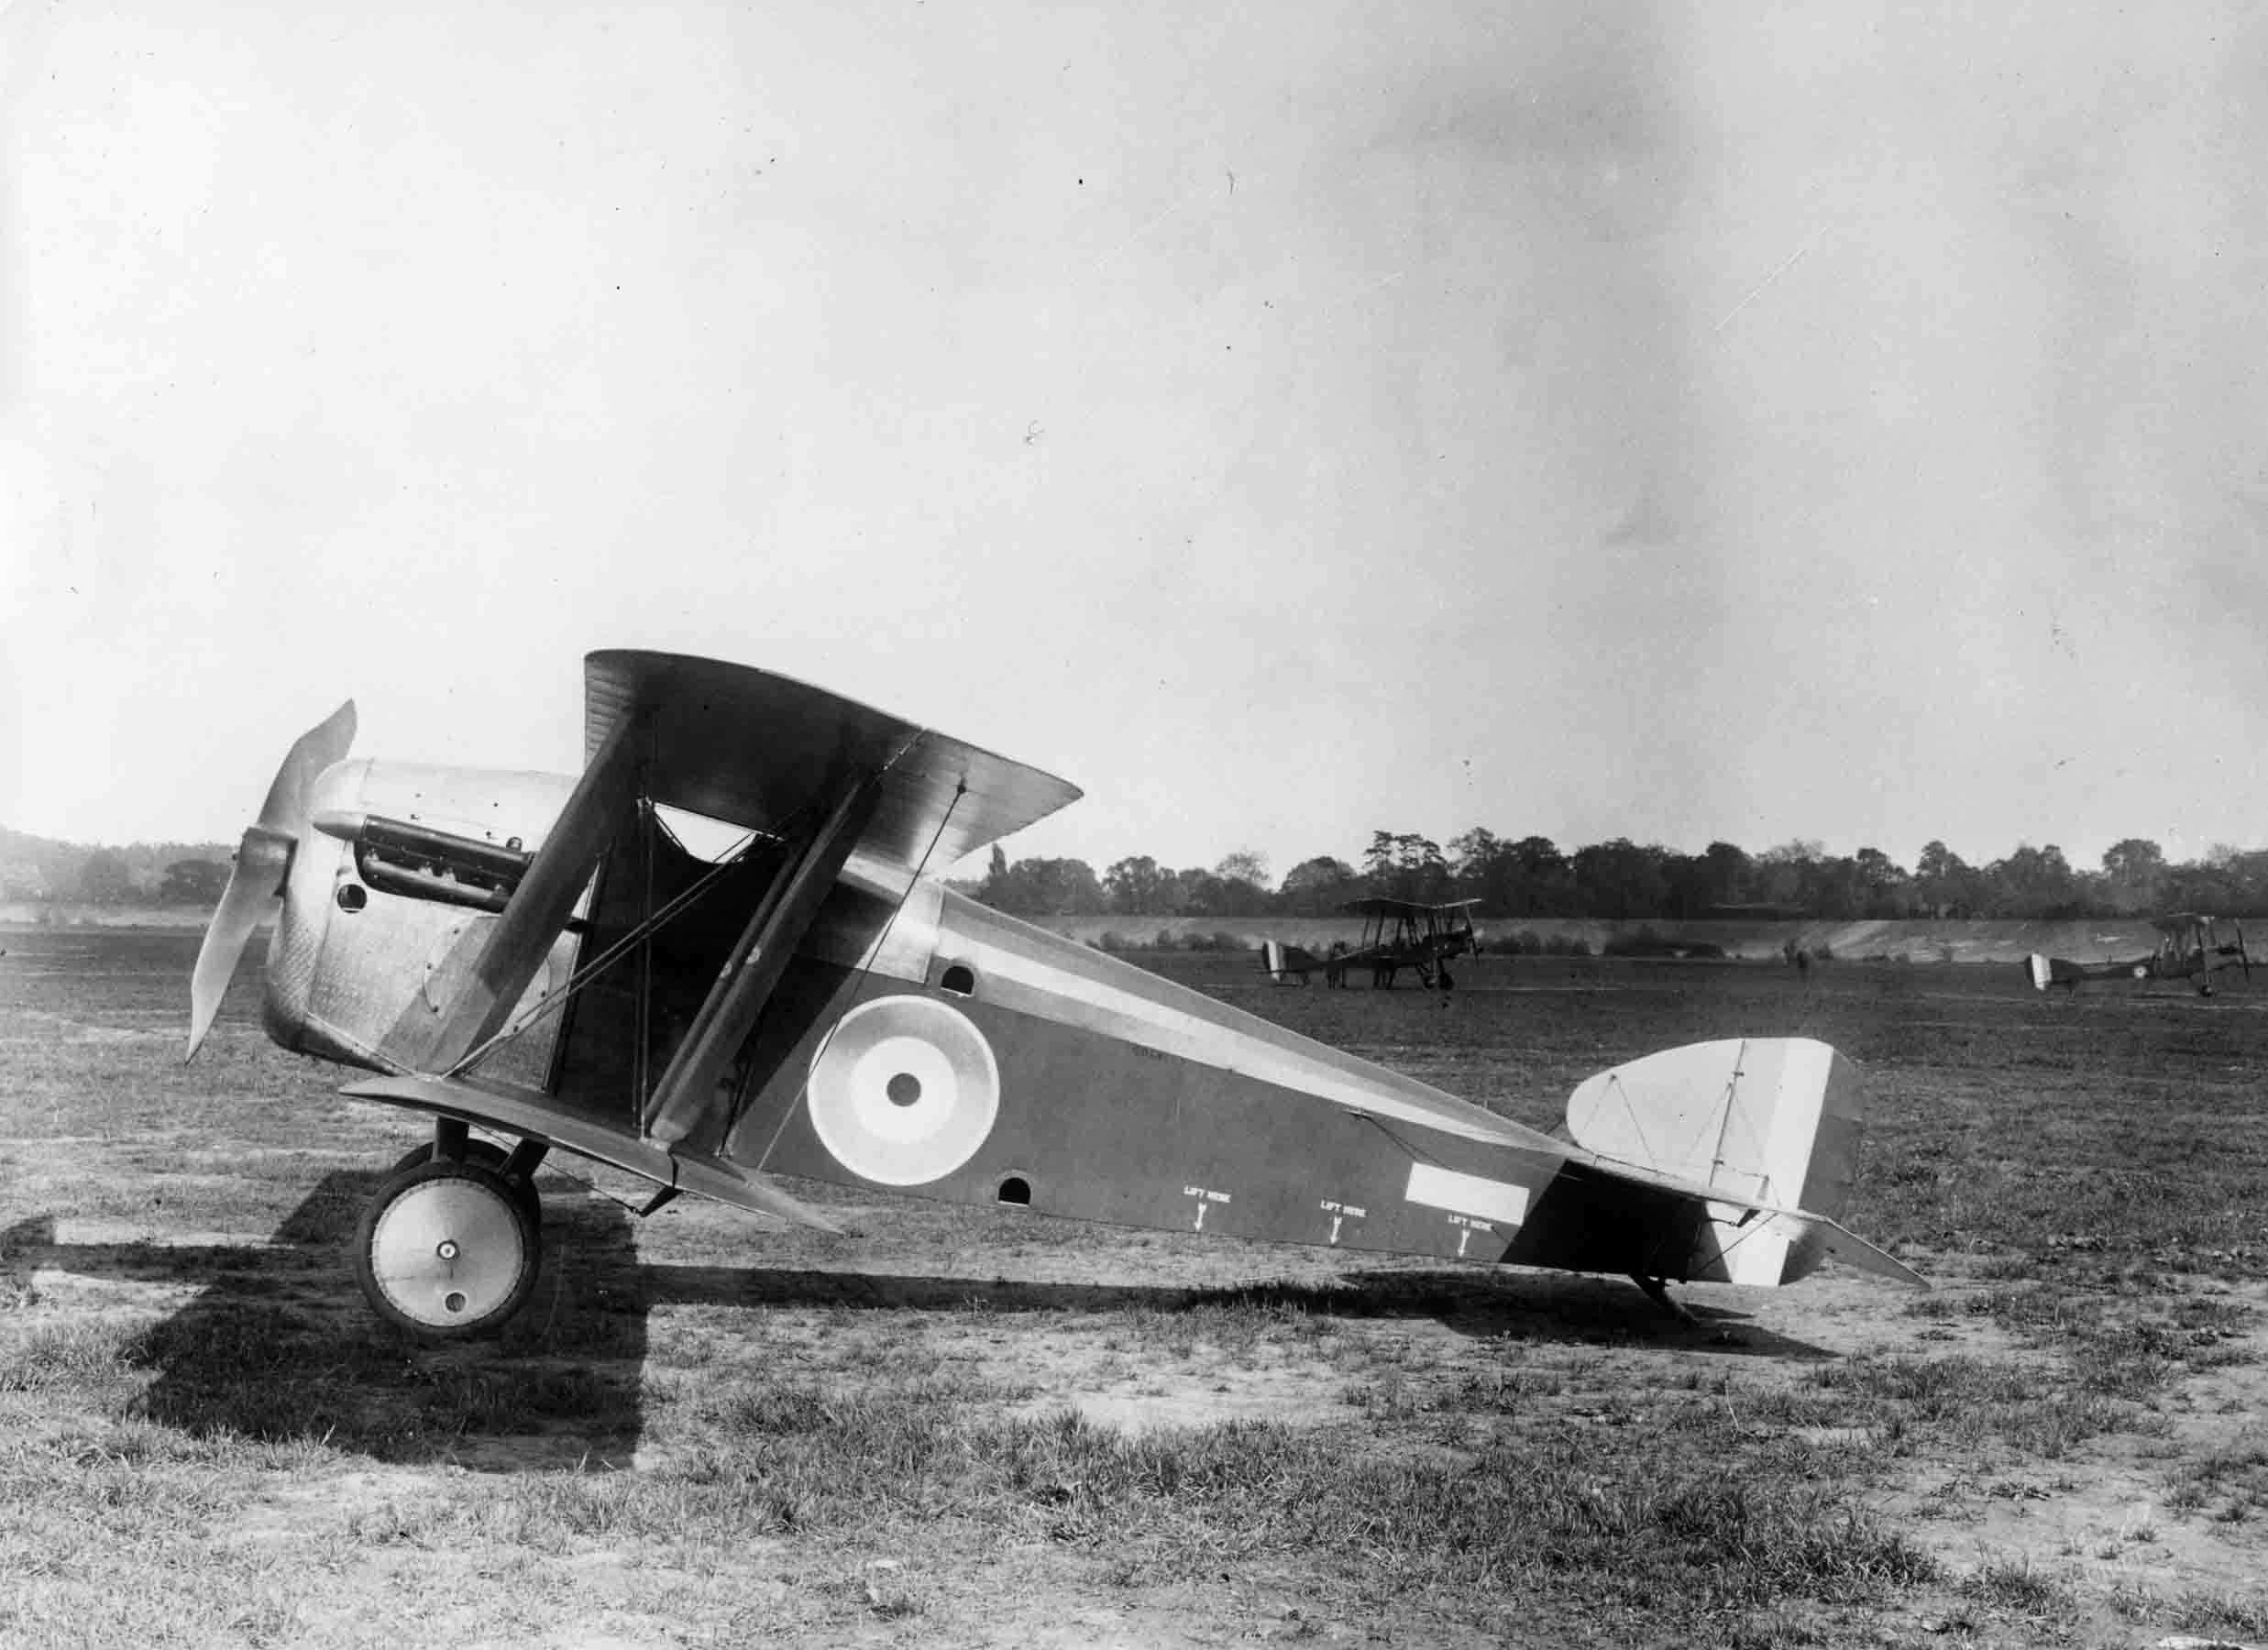 X003-2602/15935: Sopwith 5F.1 Dolphin, first prototype, at Brooklands, May 1917.  The distinctive appearance of the aircraft can be readily appreciated in this view.  At this stage, the aircraft was in its original form with the initial version of fuselage decking and there were no cooling vents in the engine cowling.  Two B.E.2es were in the background.